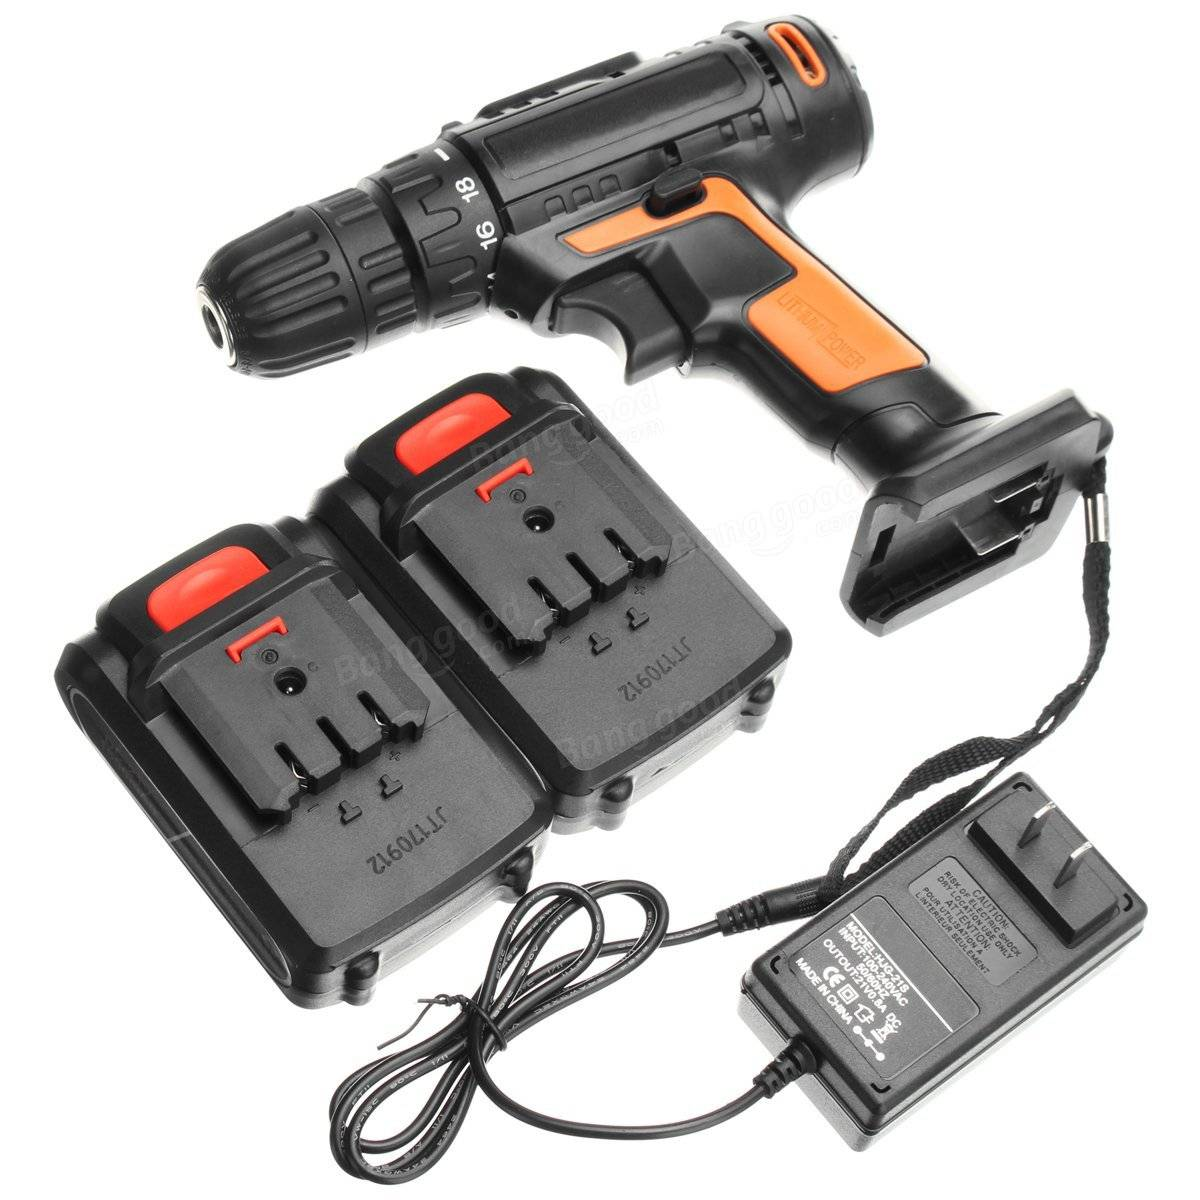 21V Cordless Lithium Electric Screwdriver Power Driver Drill Multipurposed Drilling Machine